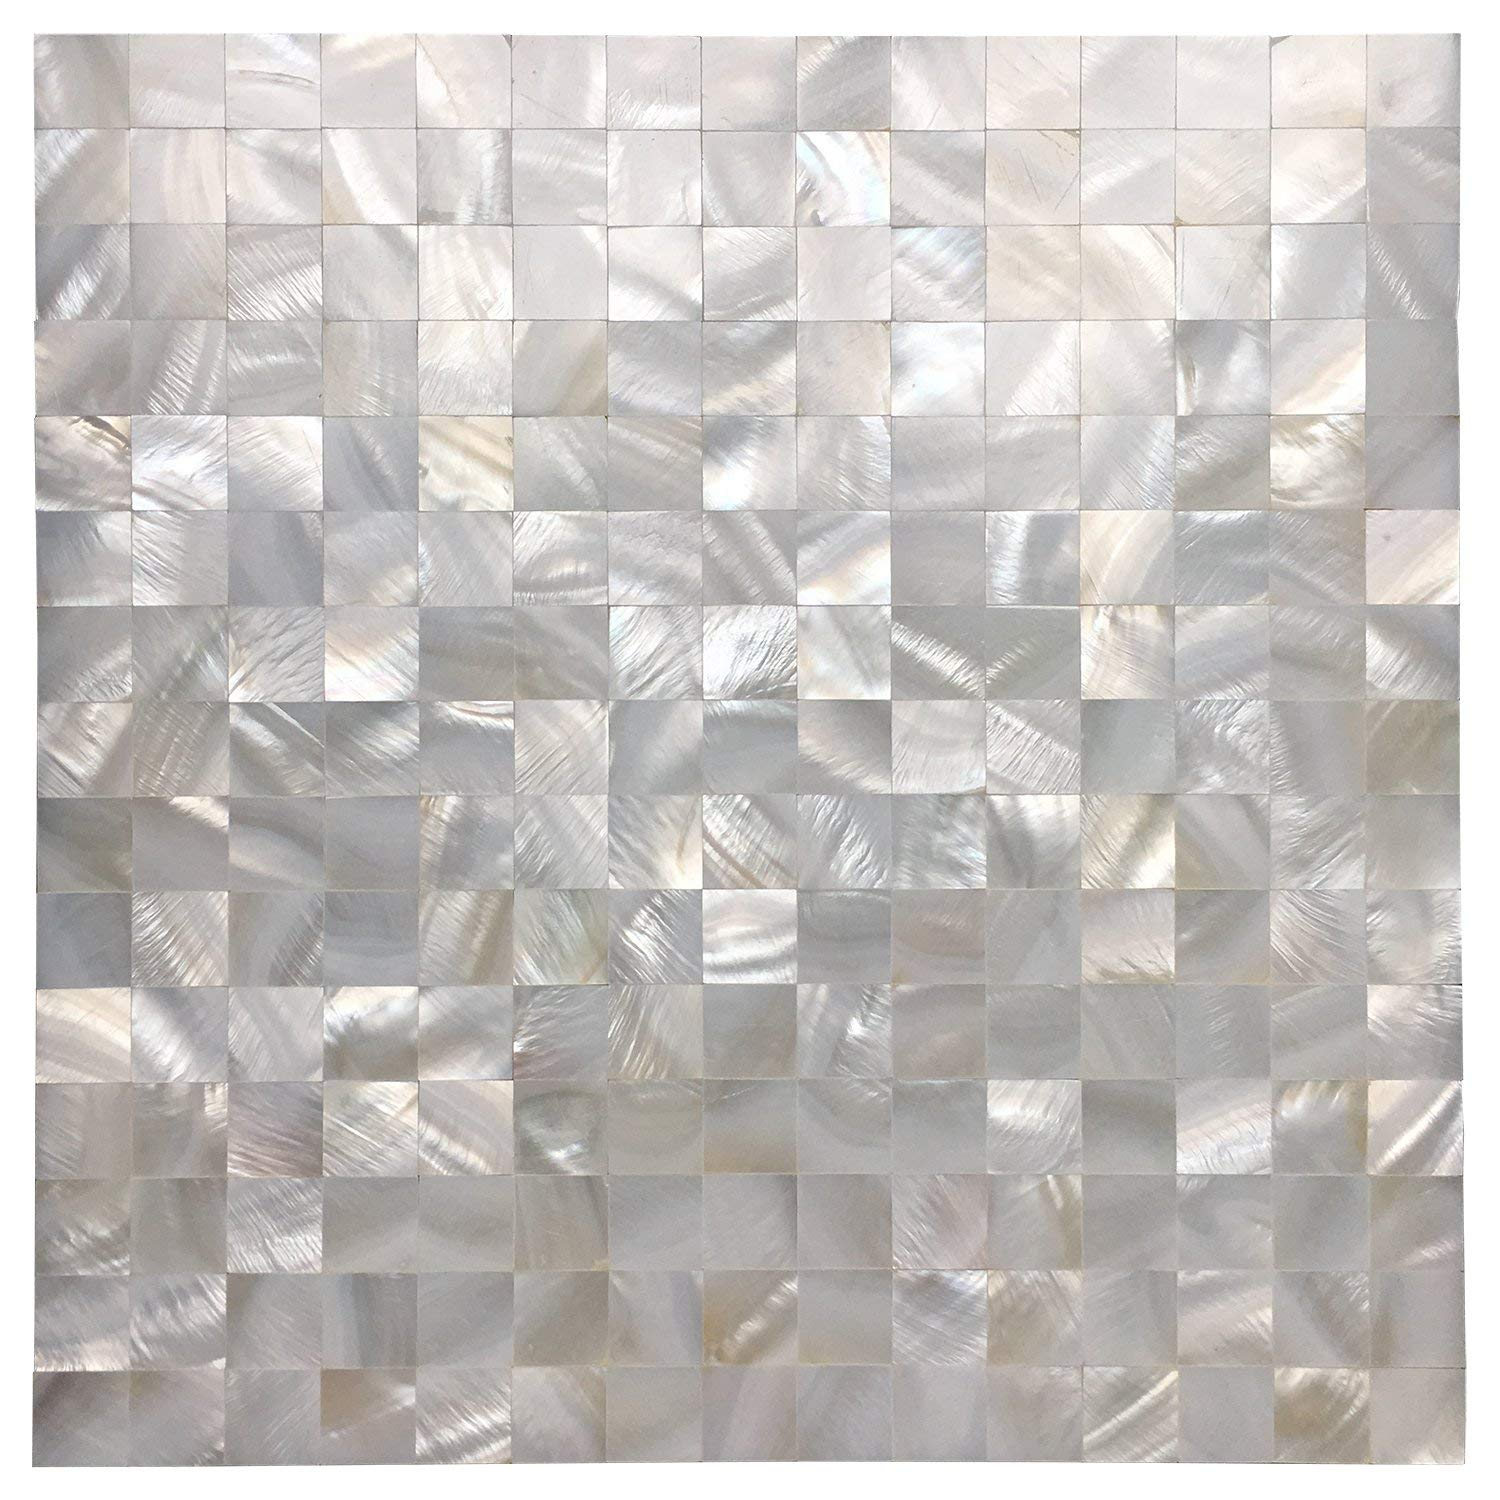 Art3d Mother of Pearl Mosaic Tile for Kitchen Backsplash/Bathroom/Shower Wall, 12'' X 12'' White Mini Square, Seamless by Art3d